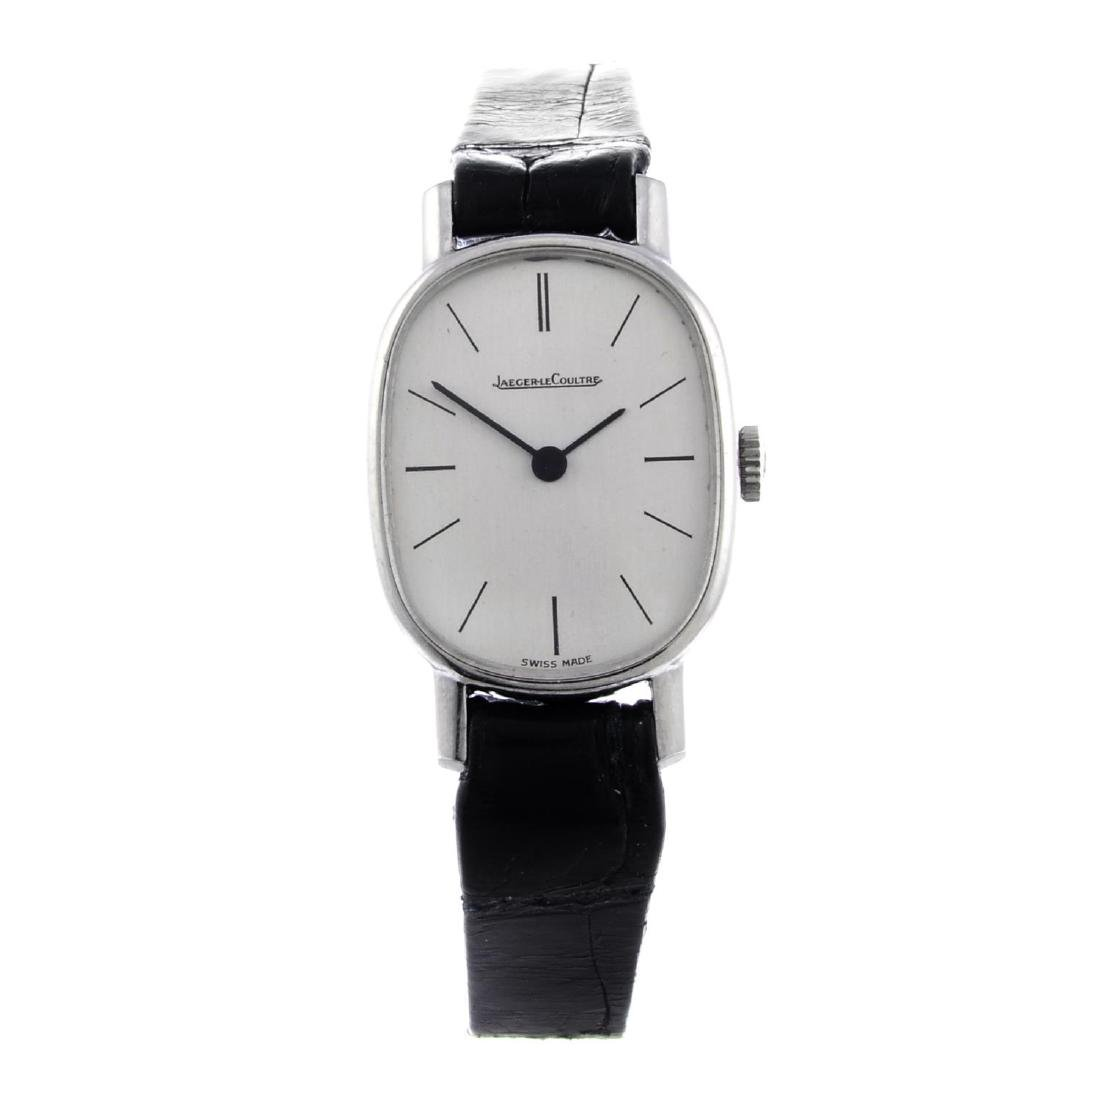 JAEGER-LECOULTRE- a lady's wrist watch. Stainless steel